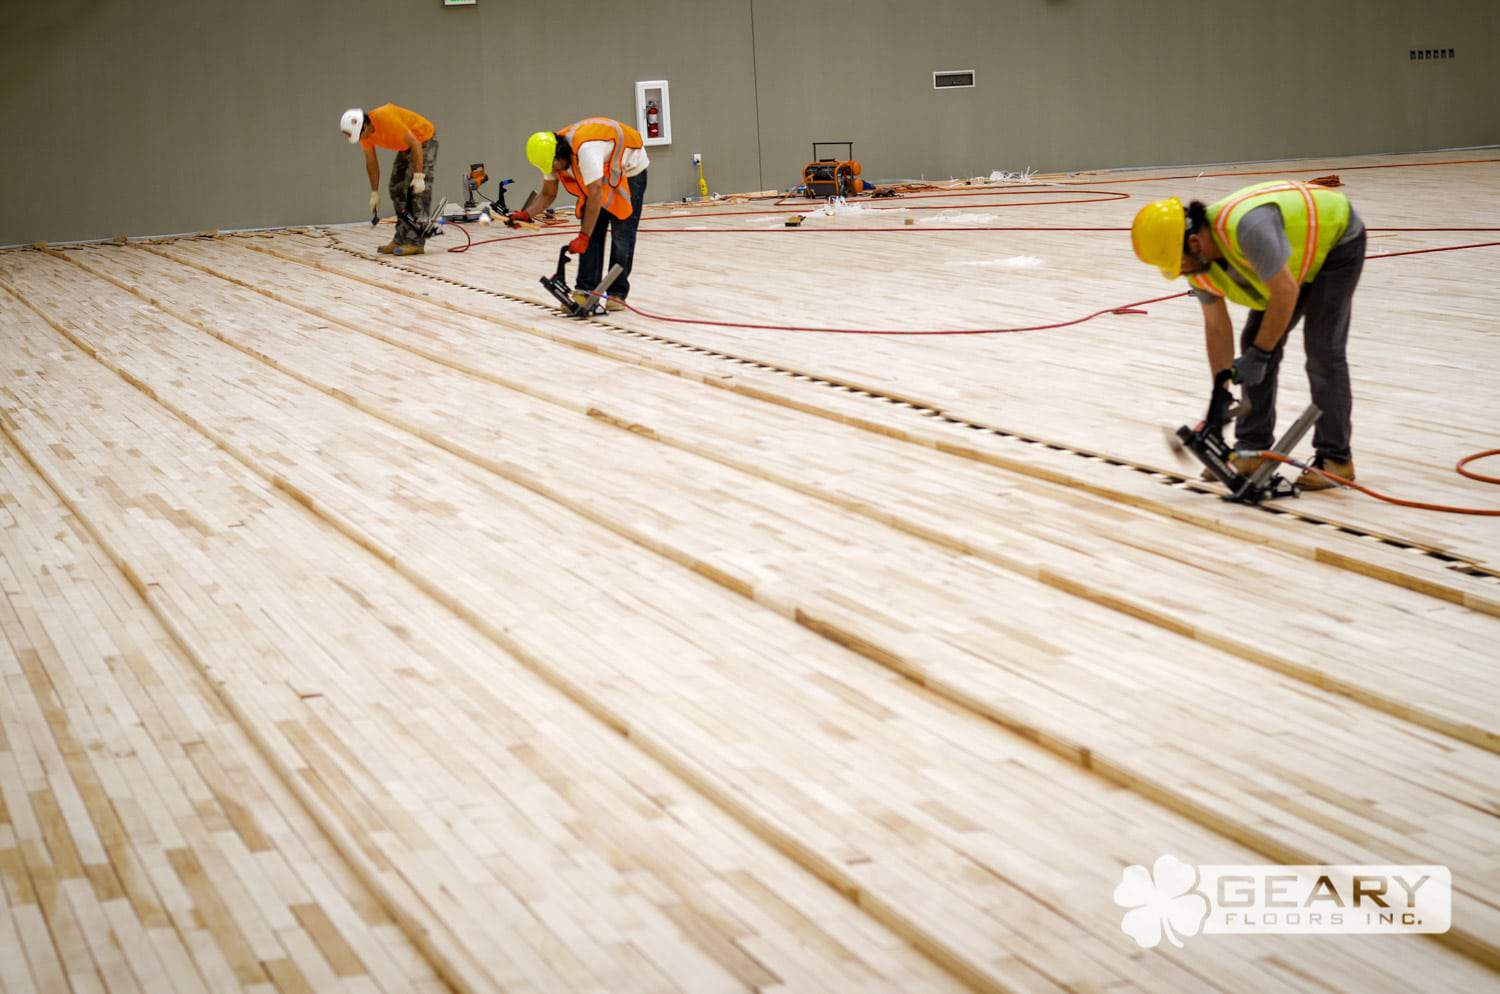 San Diego Athletic Flooring Geary Floors 52 2055 - Basketball Court Flooring - Wood Gym Flooring - Hardwood Flooring San Diego